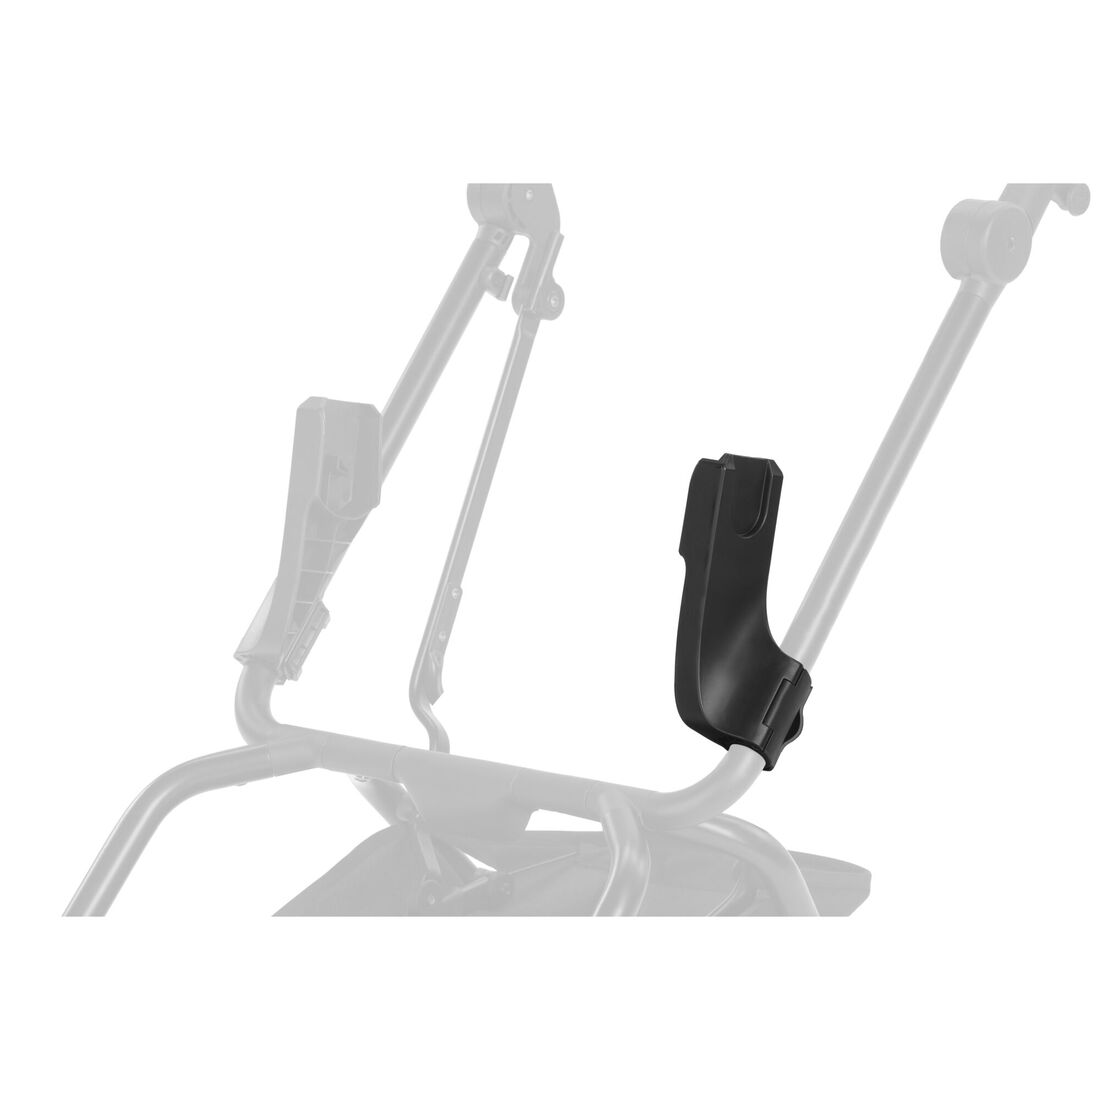 CYBEX Adapter Car Seat Eezy S Line - Black in Black large image number 2